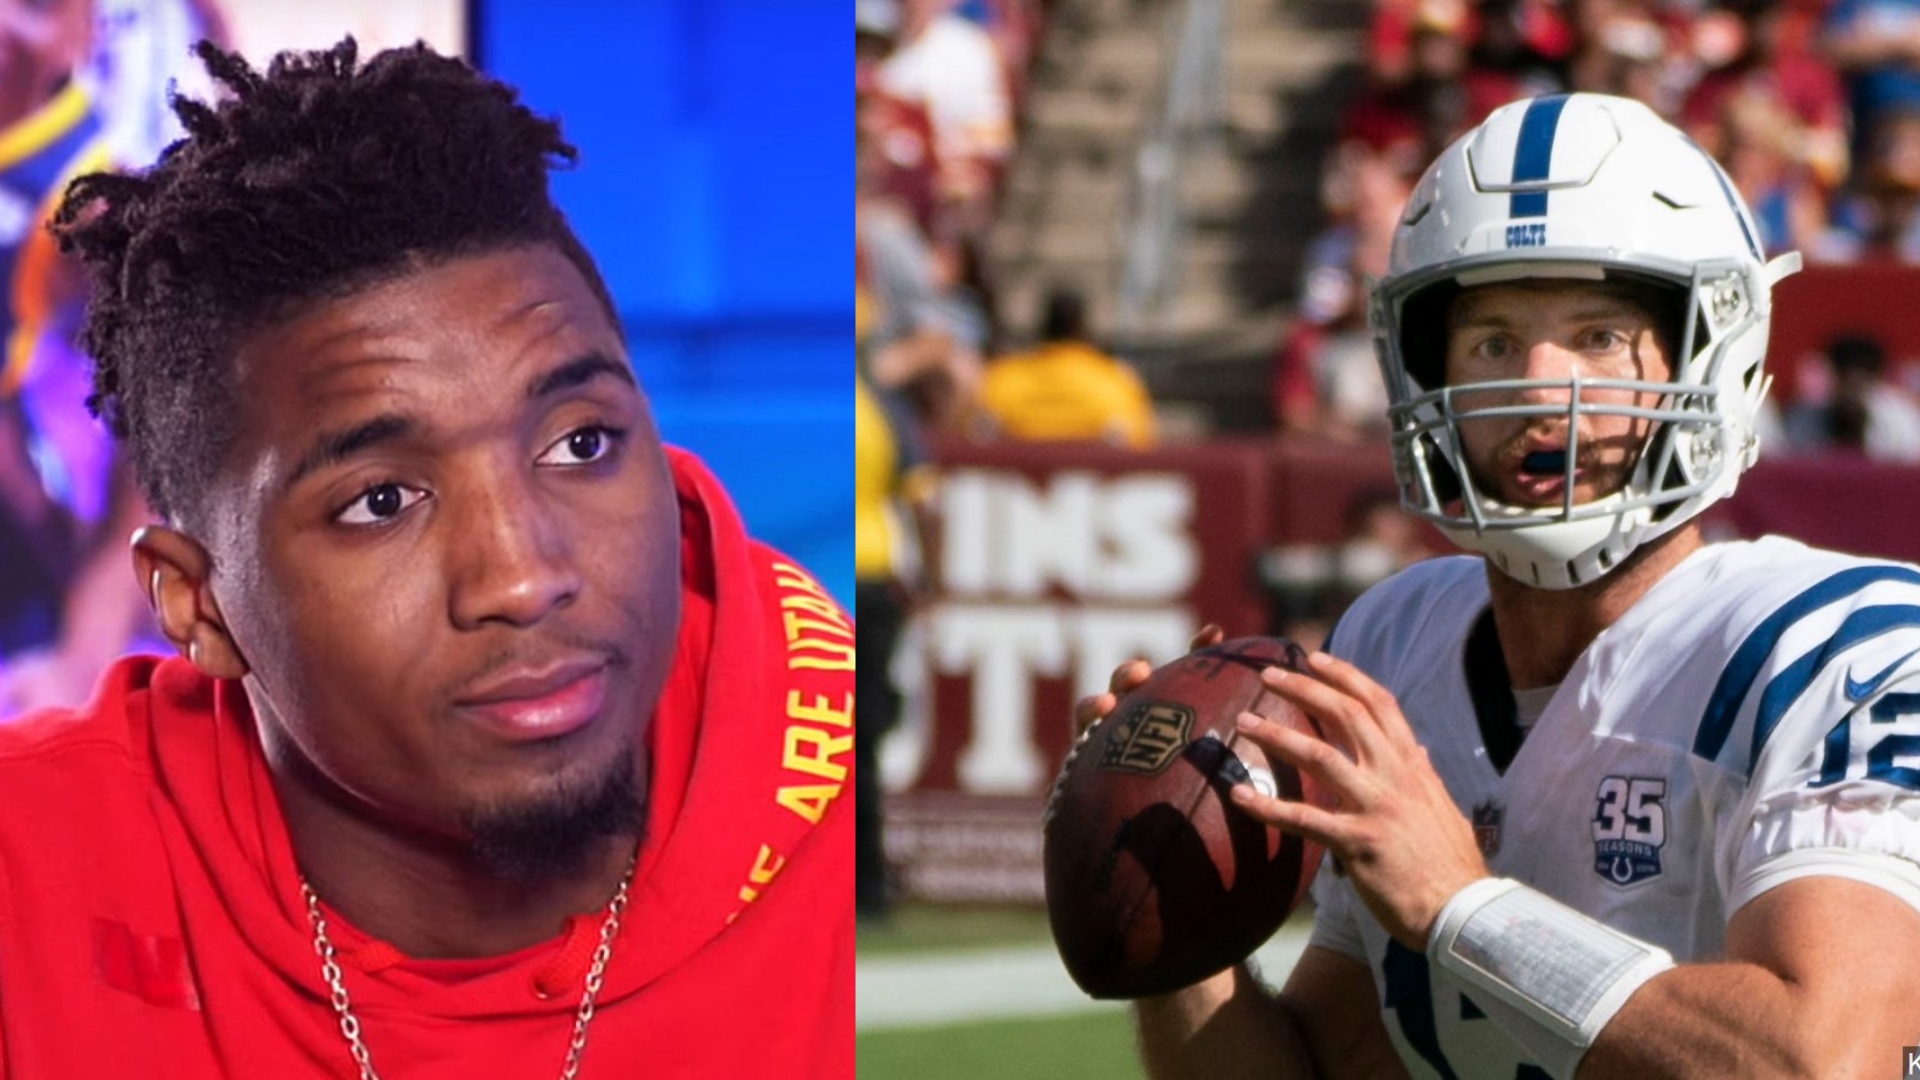 Donovan Mitchell joins many professional athletes and other public figures who support Indianapolis Colts quarterback Andrew Luck's decision to retire. (Photos: MGN)